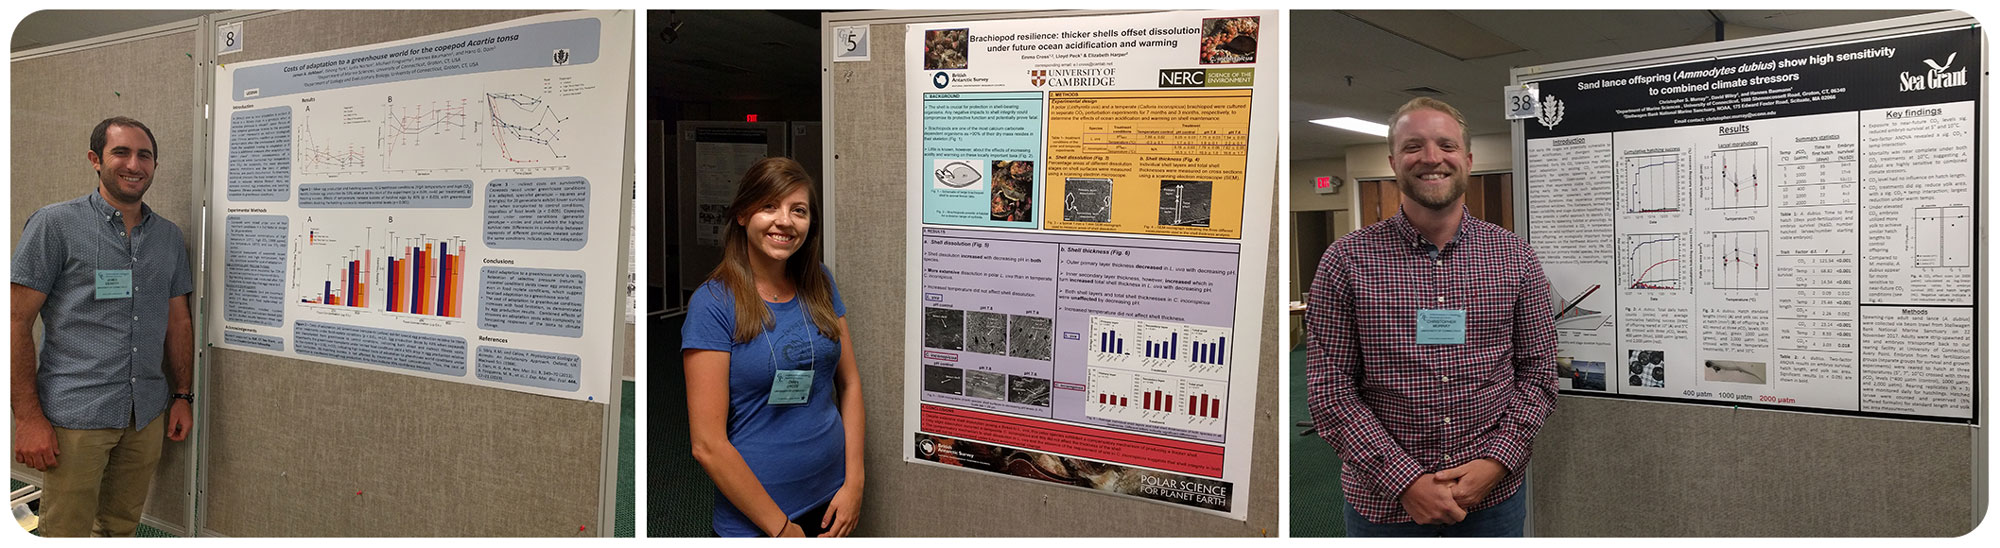 GRC-posters